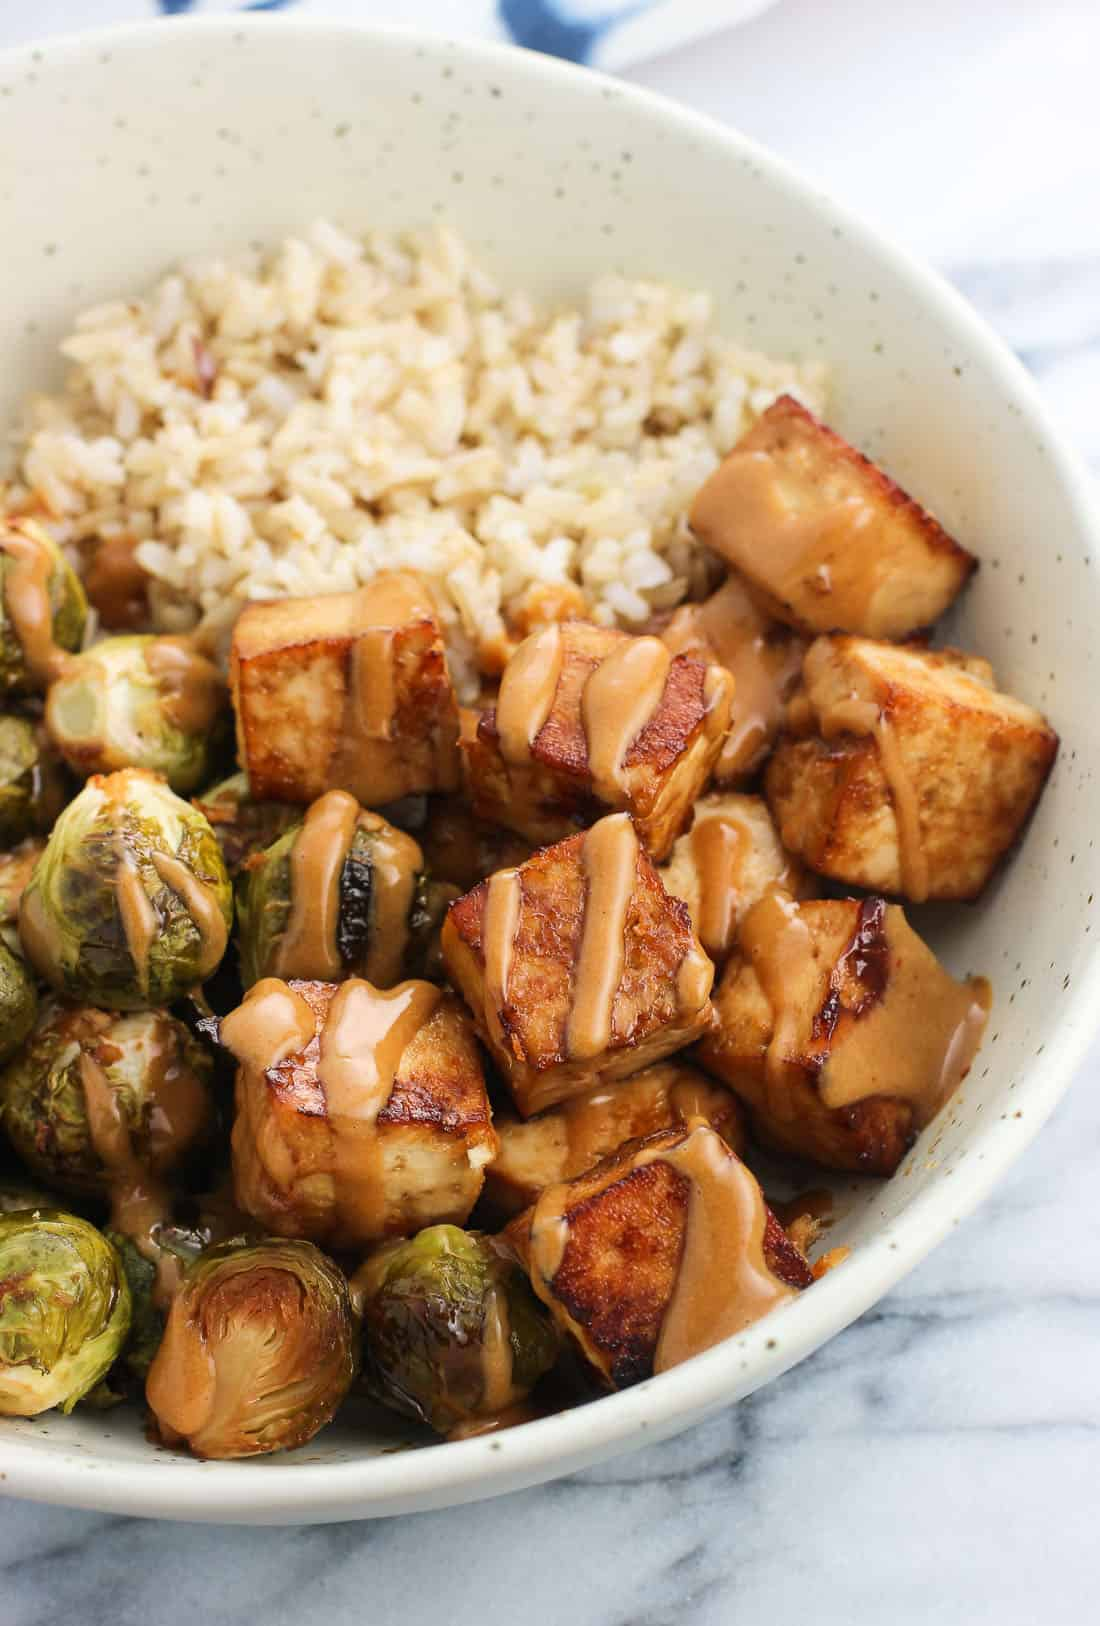 A bowl of baked tofu and roasted brussels sprouts halves drizzled with peanut sauce served with brown rice